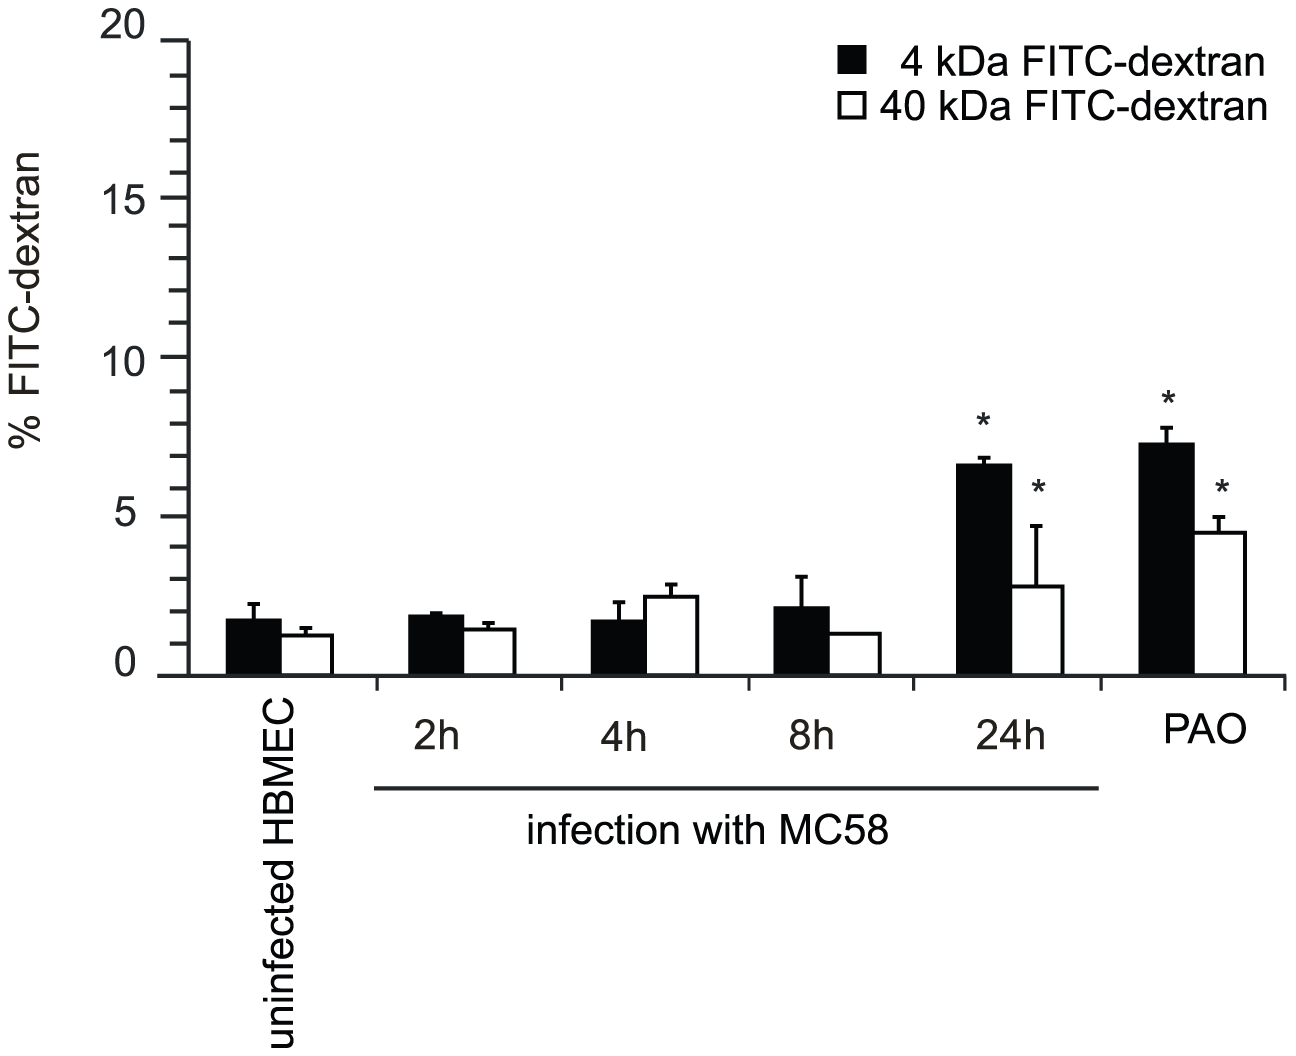 <i>N. meningitidis</i> infection alters the paracellular permeability of HBMEC.